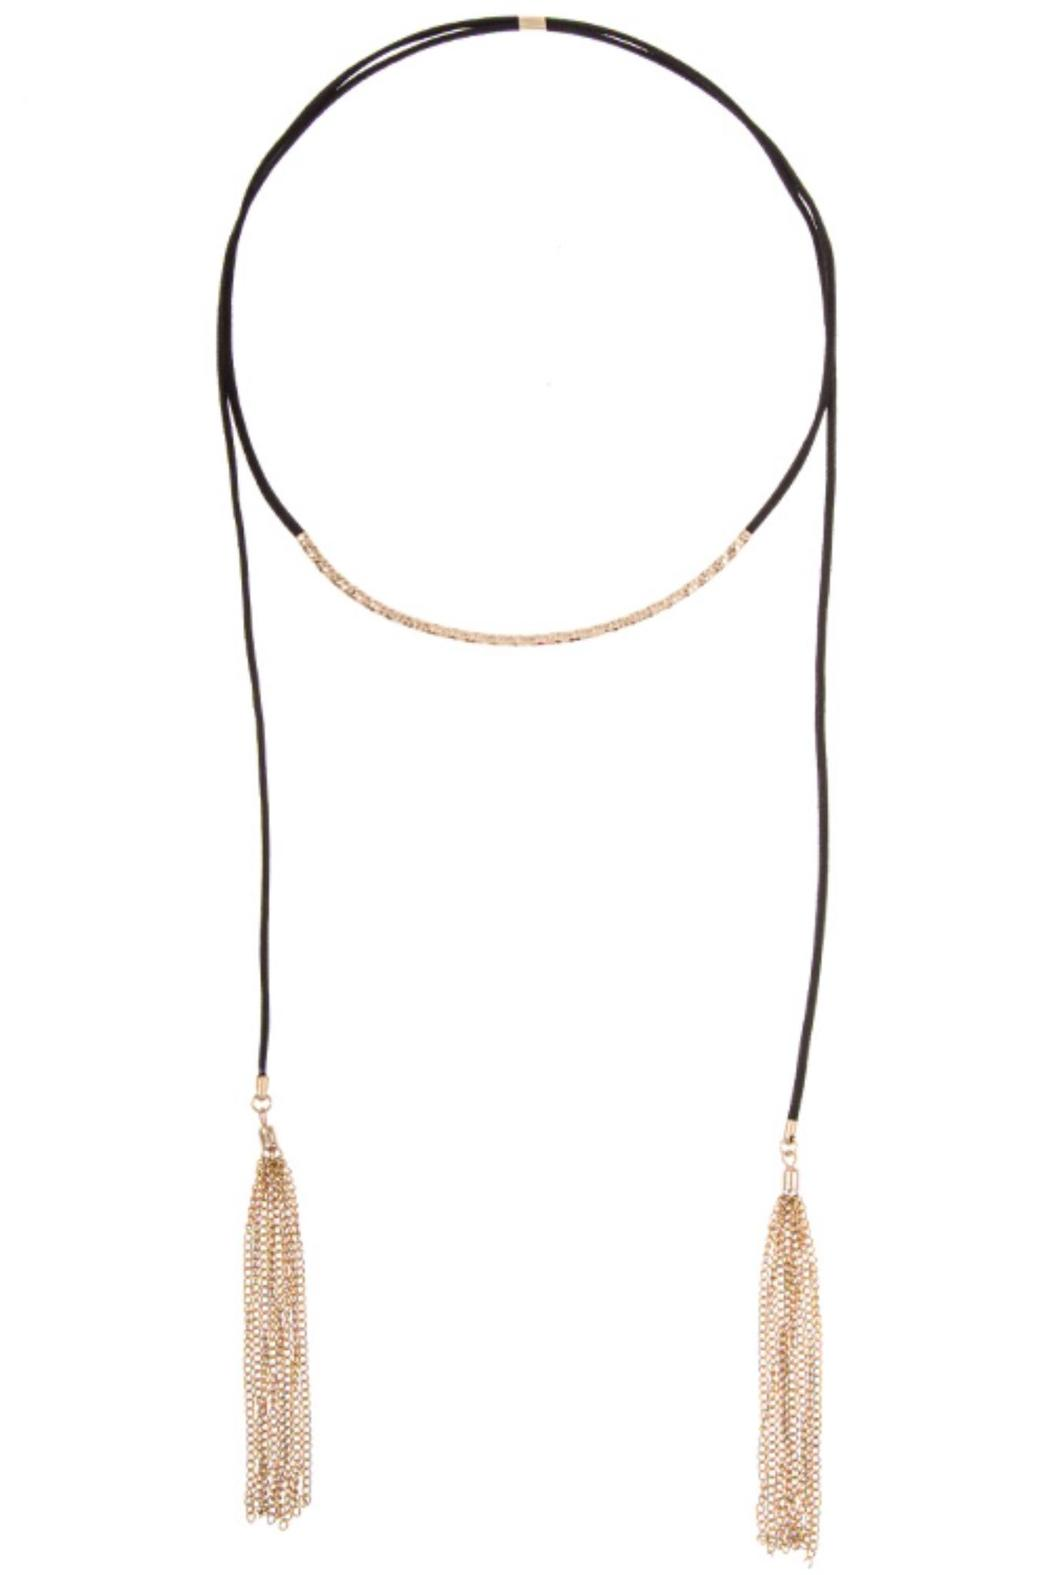 Andrea Bijoux Adjustable Tassel Necklace - Main Image